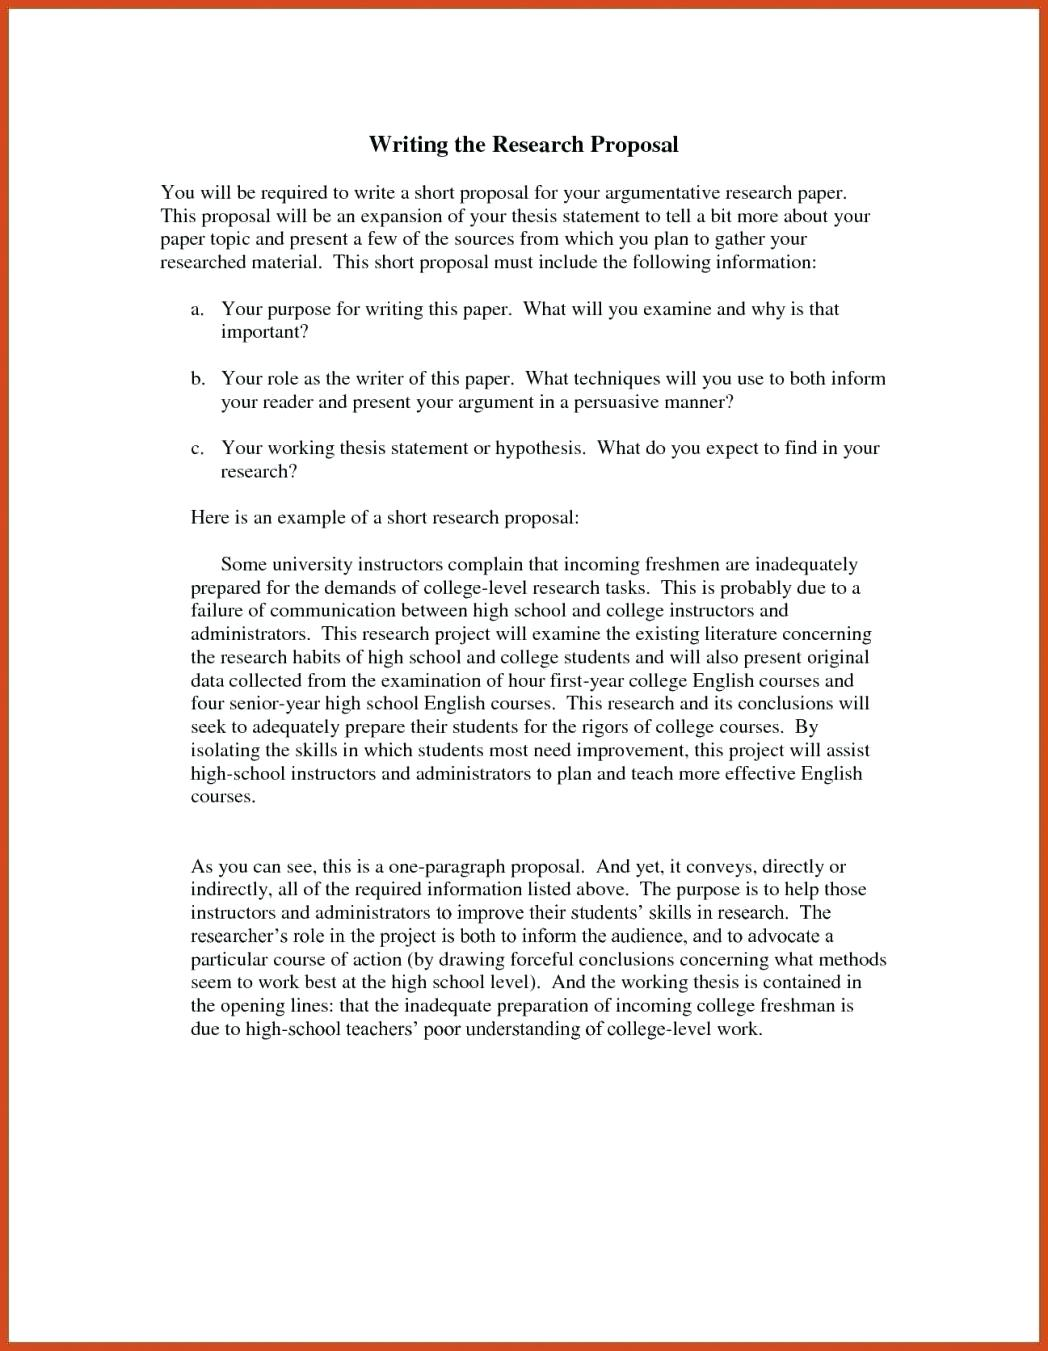 025 Sop Latex Template Research Plan Example Cover Letters Travel Agent An Of Paper In Format Proposal Design Onlines To Read Remarkable Essays Online Free Best Full